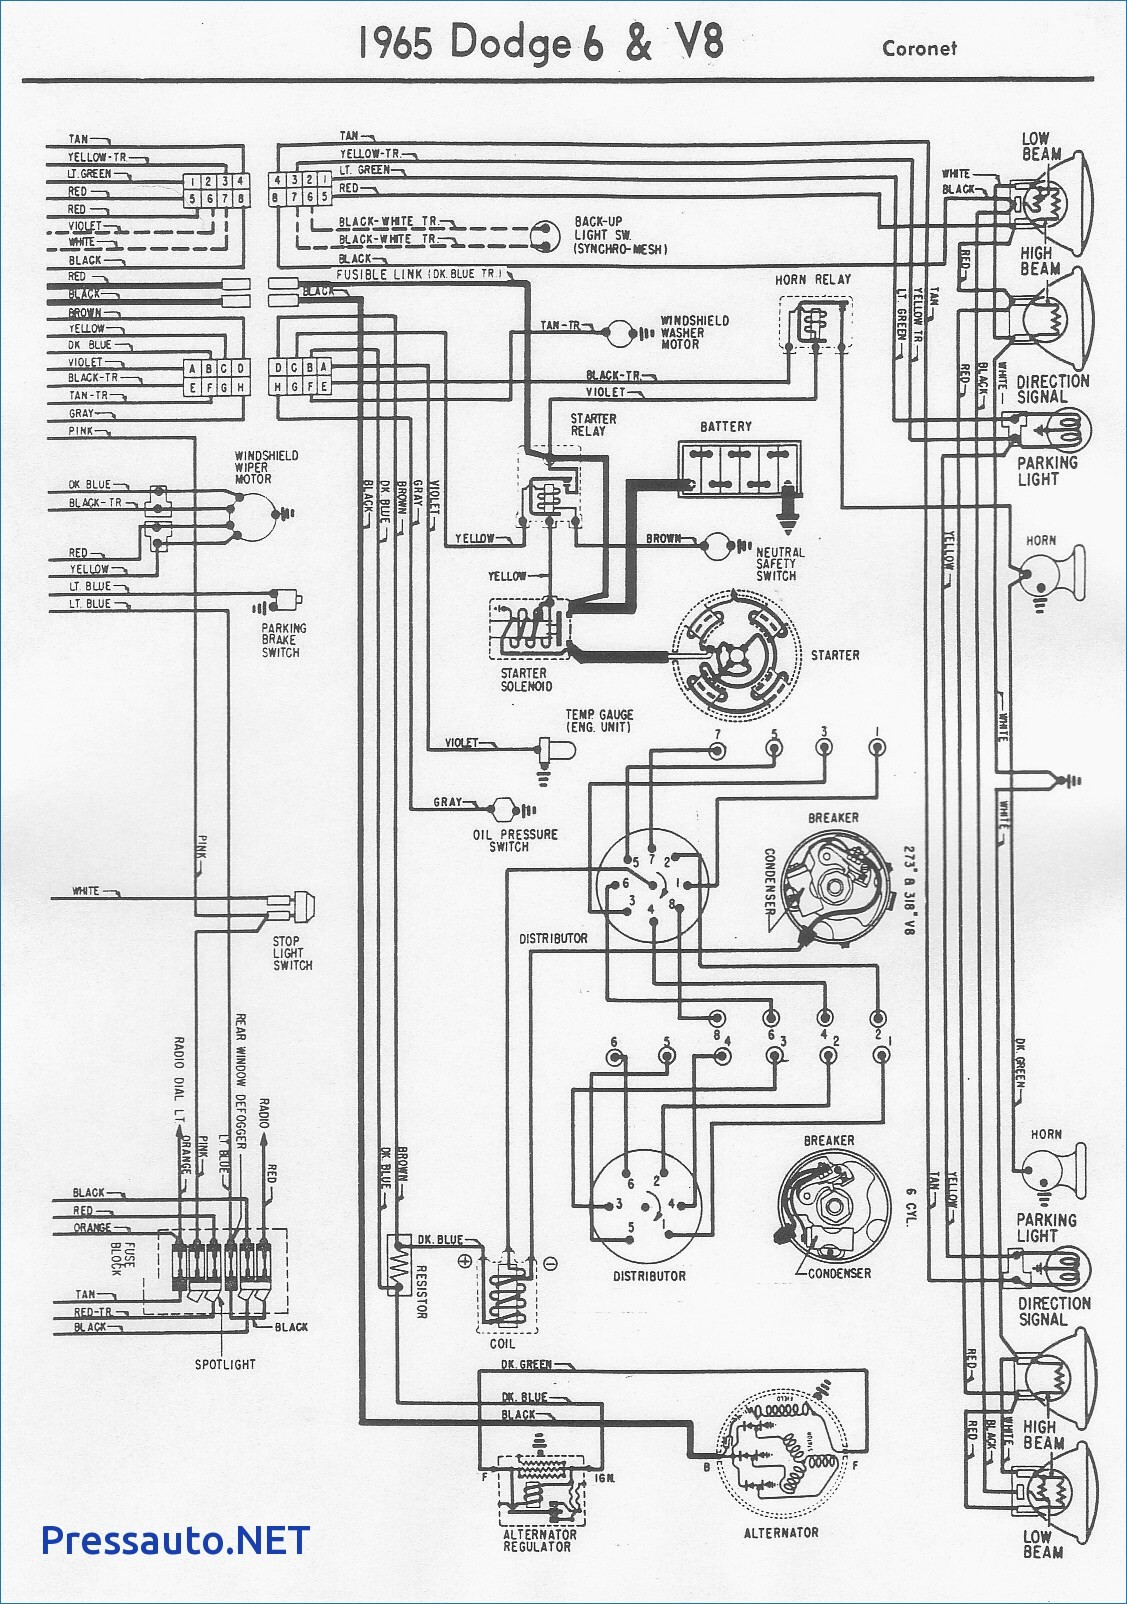 jeep m38a1 wiring diagram picture schematic